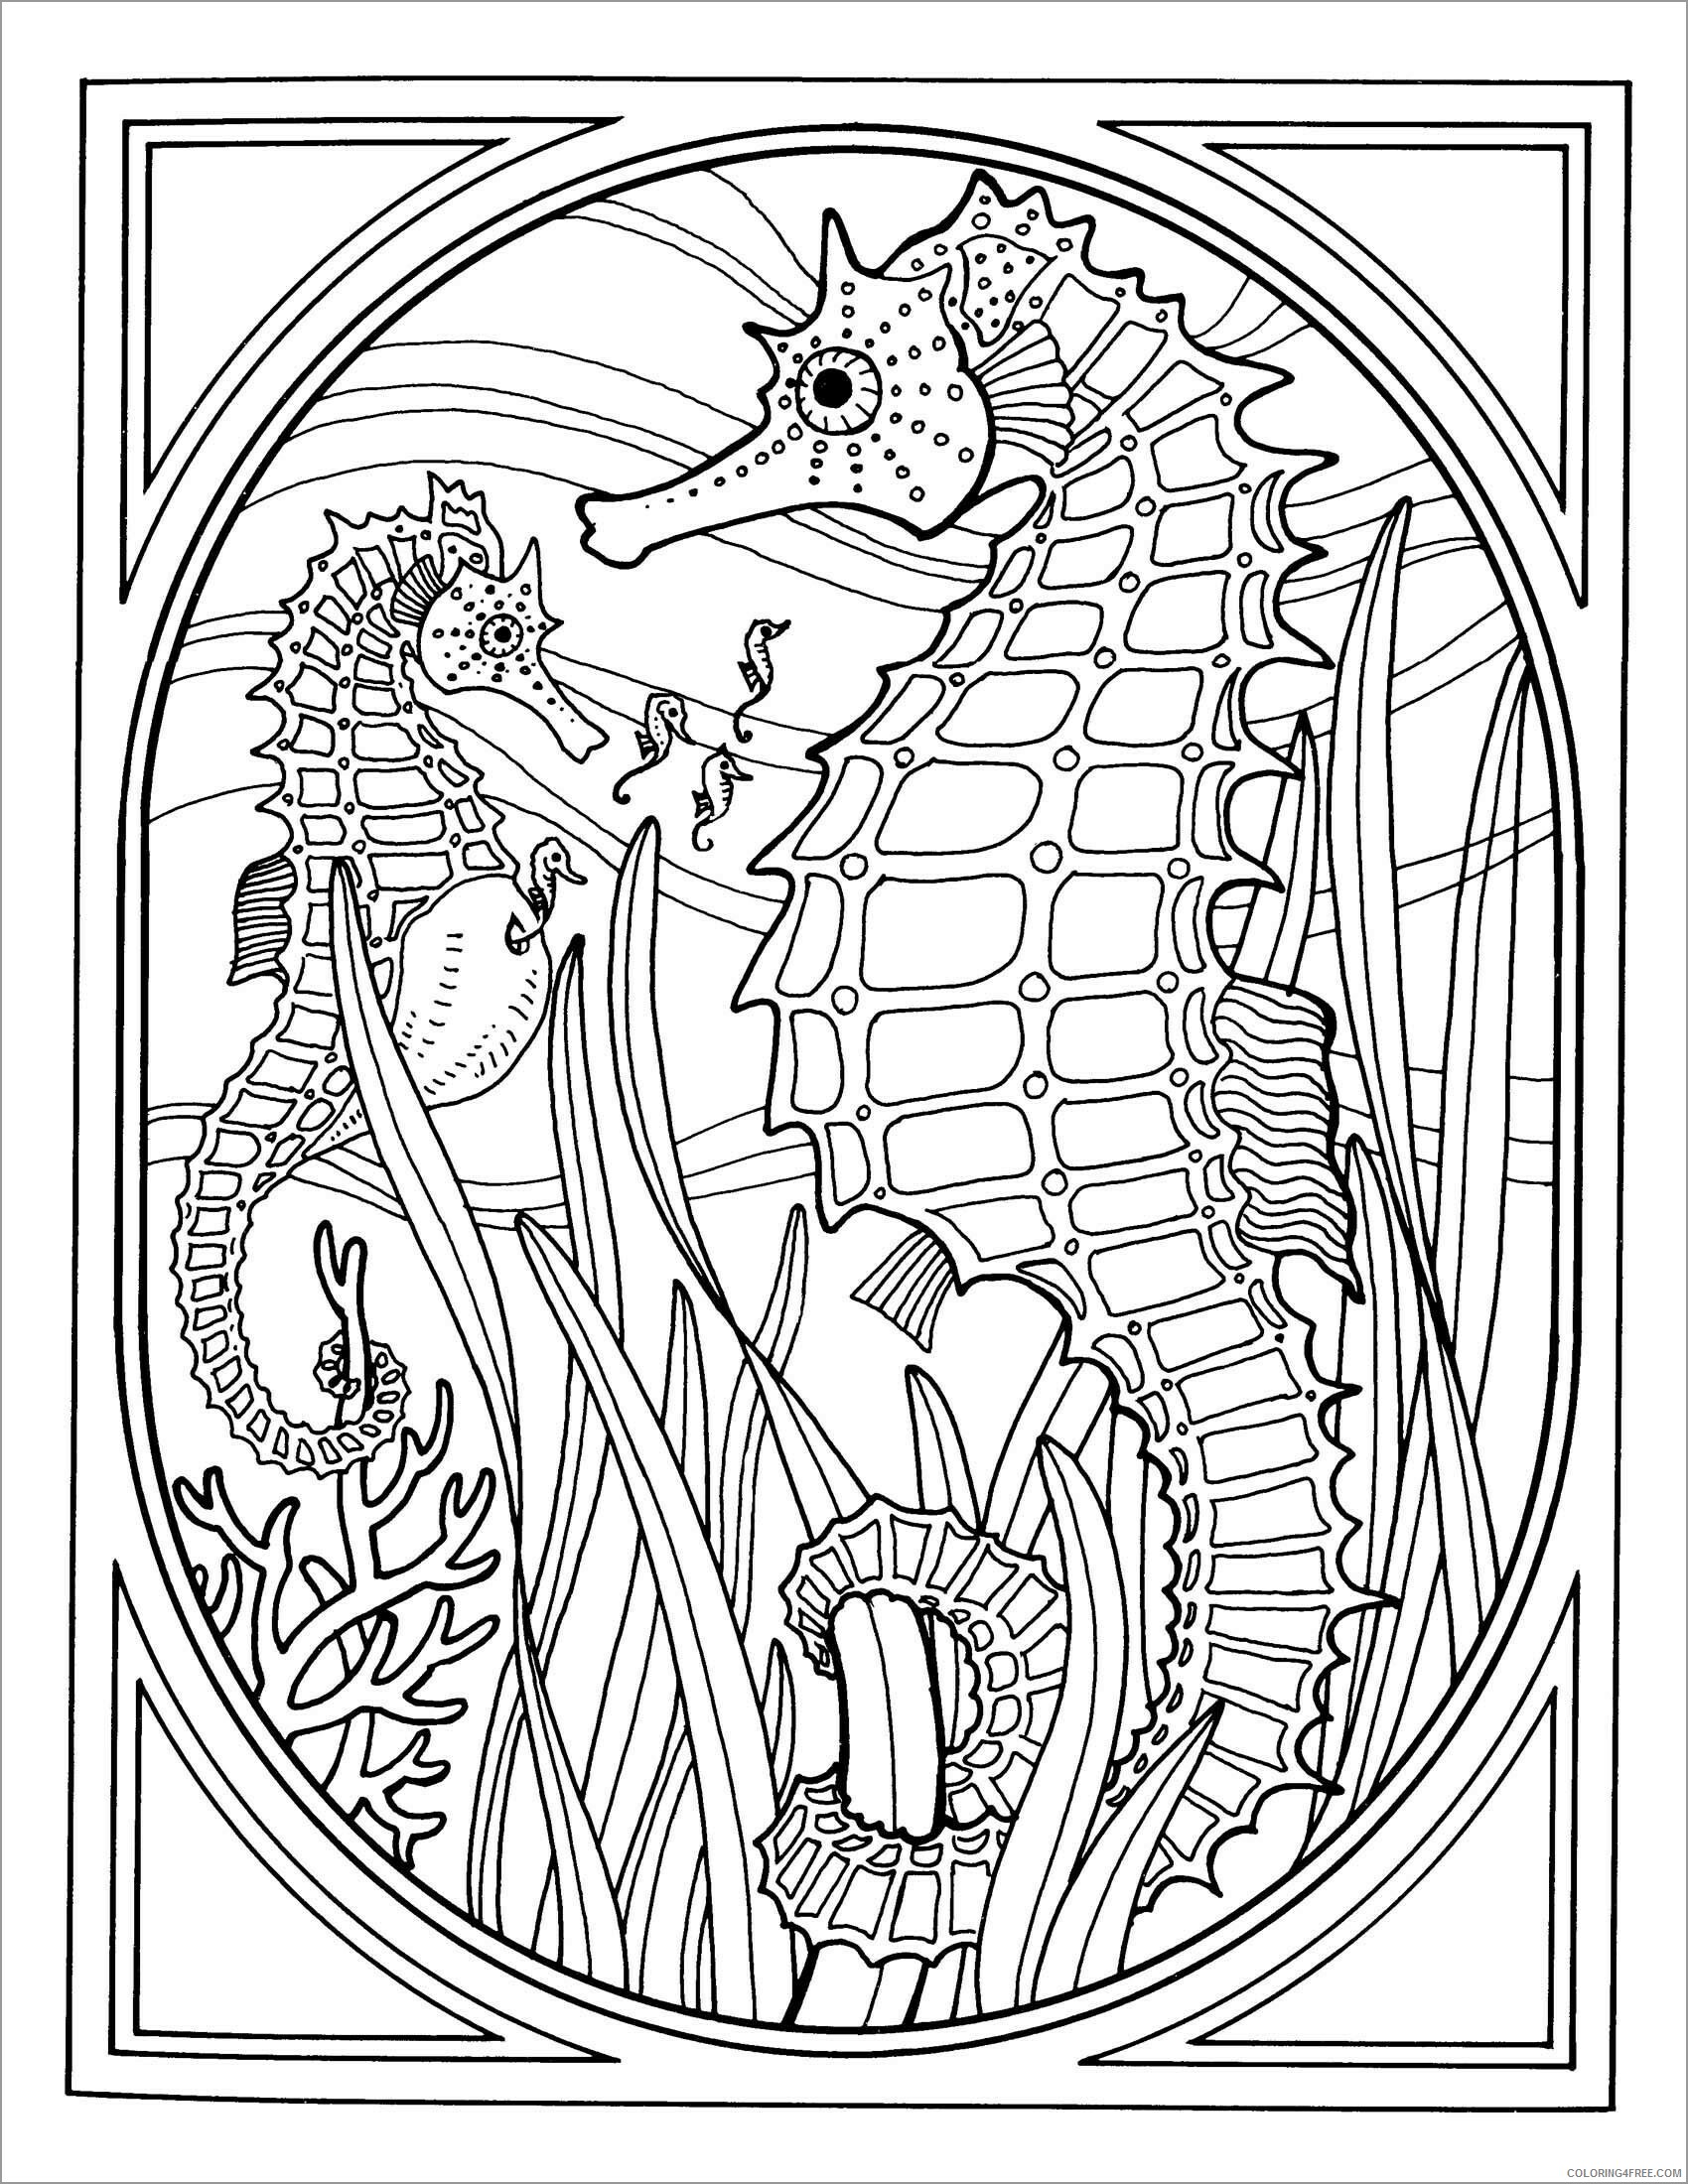 Adult Animals Coloring Pages printable seahorse for adult Printable 2020 167 Coloring4free